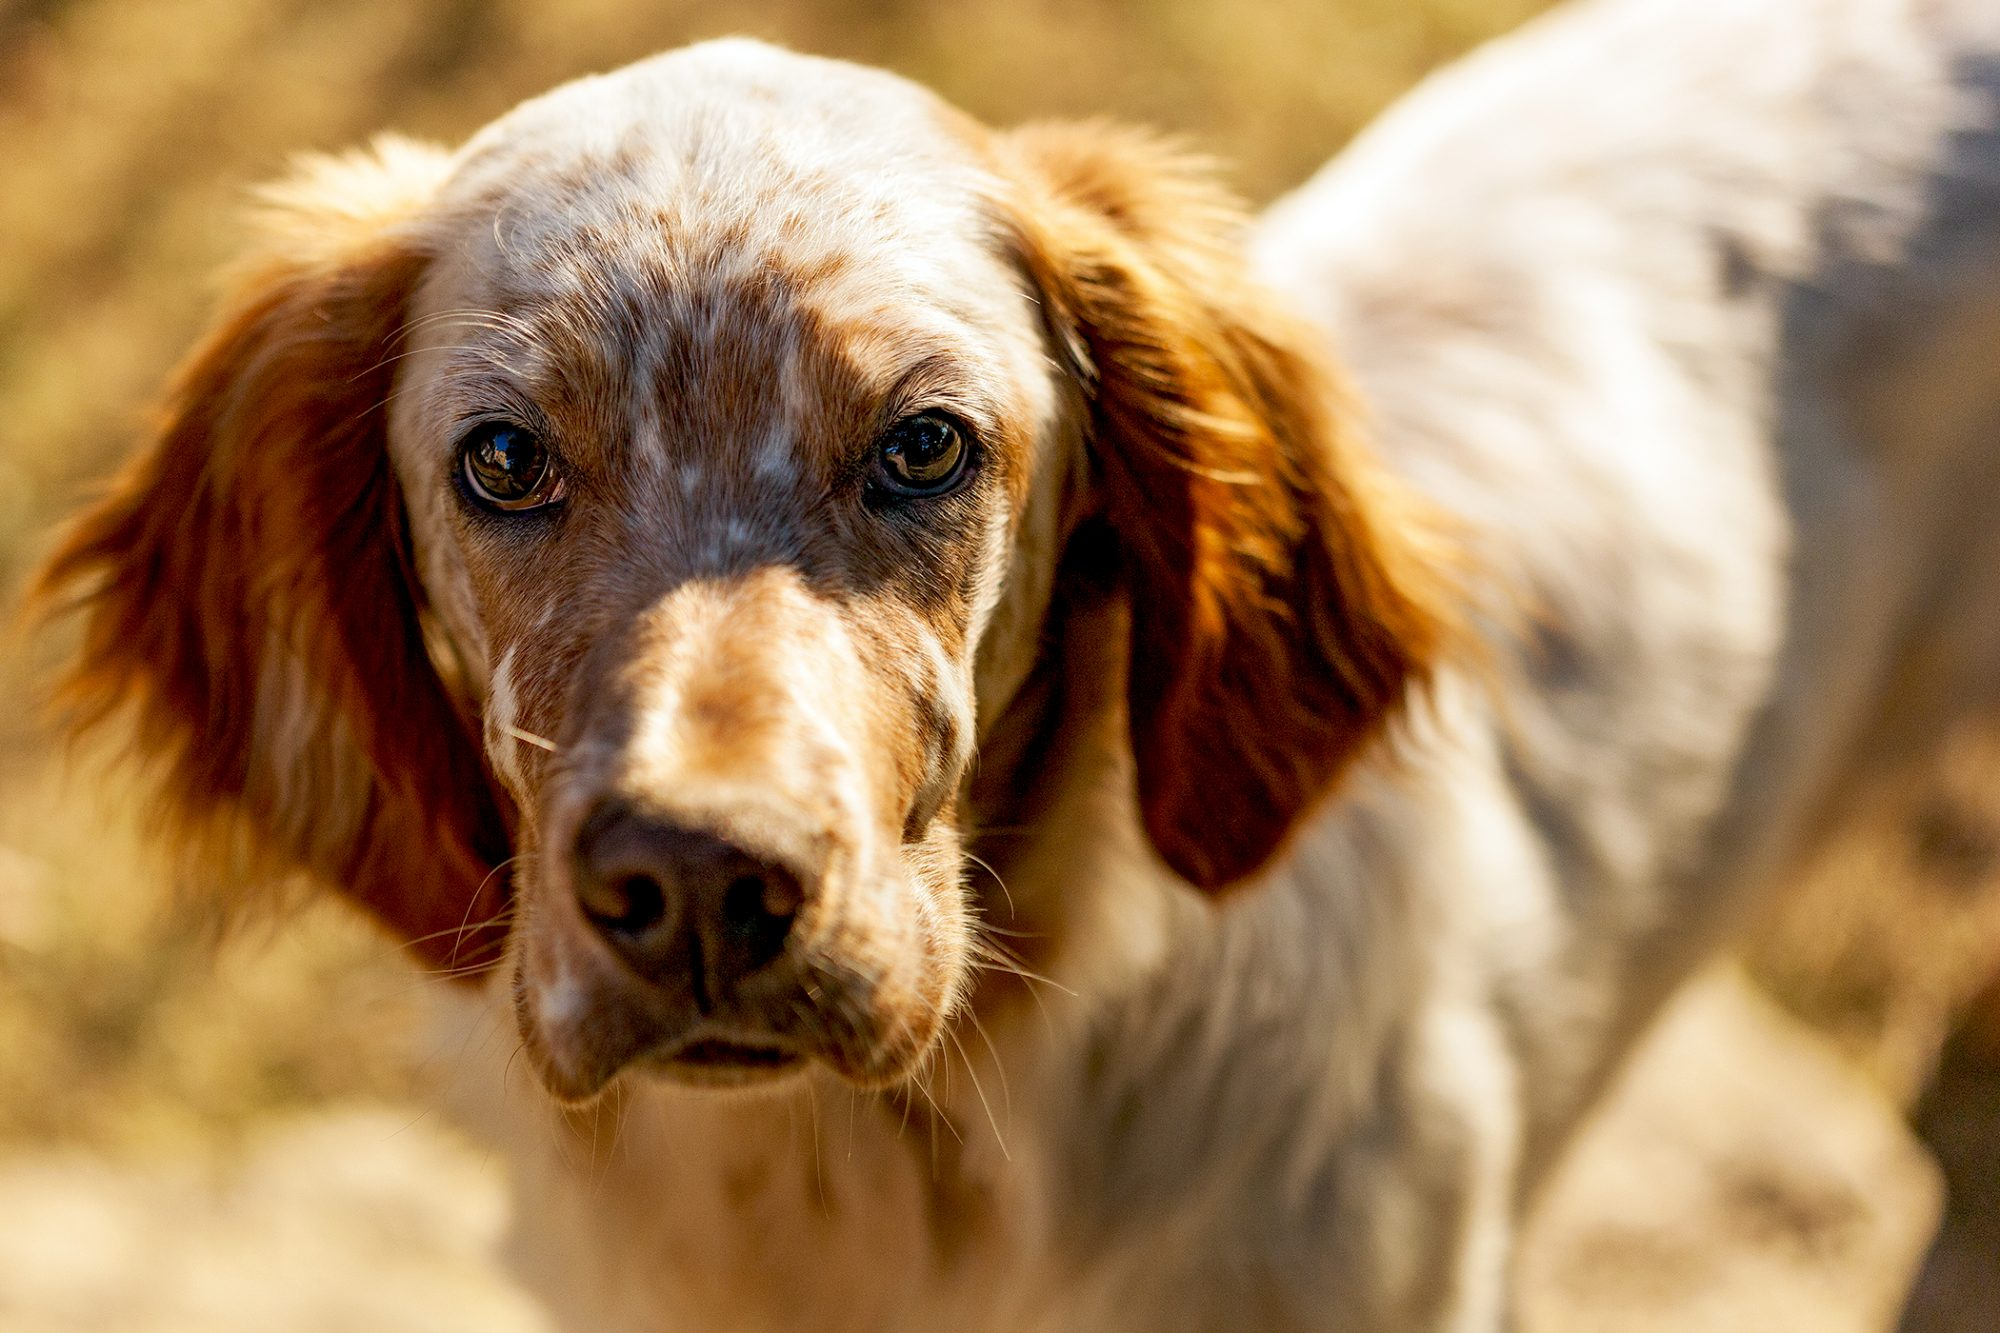 Brown and red English Setter portrait at Golden Hour